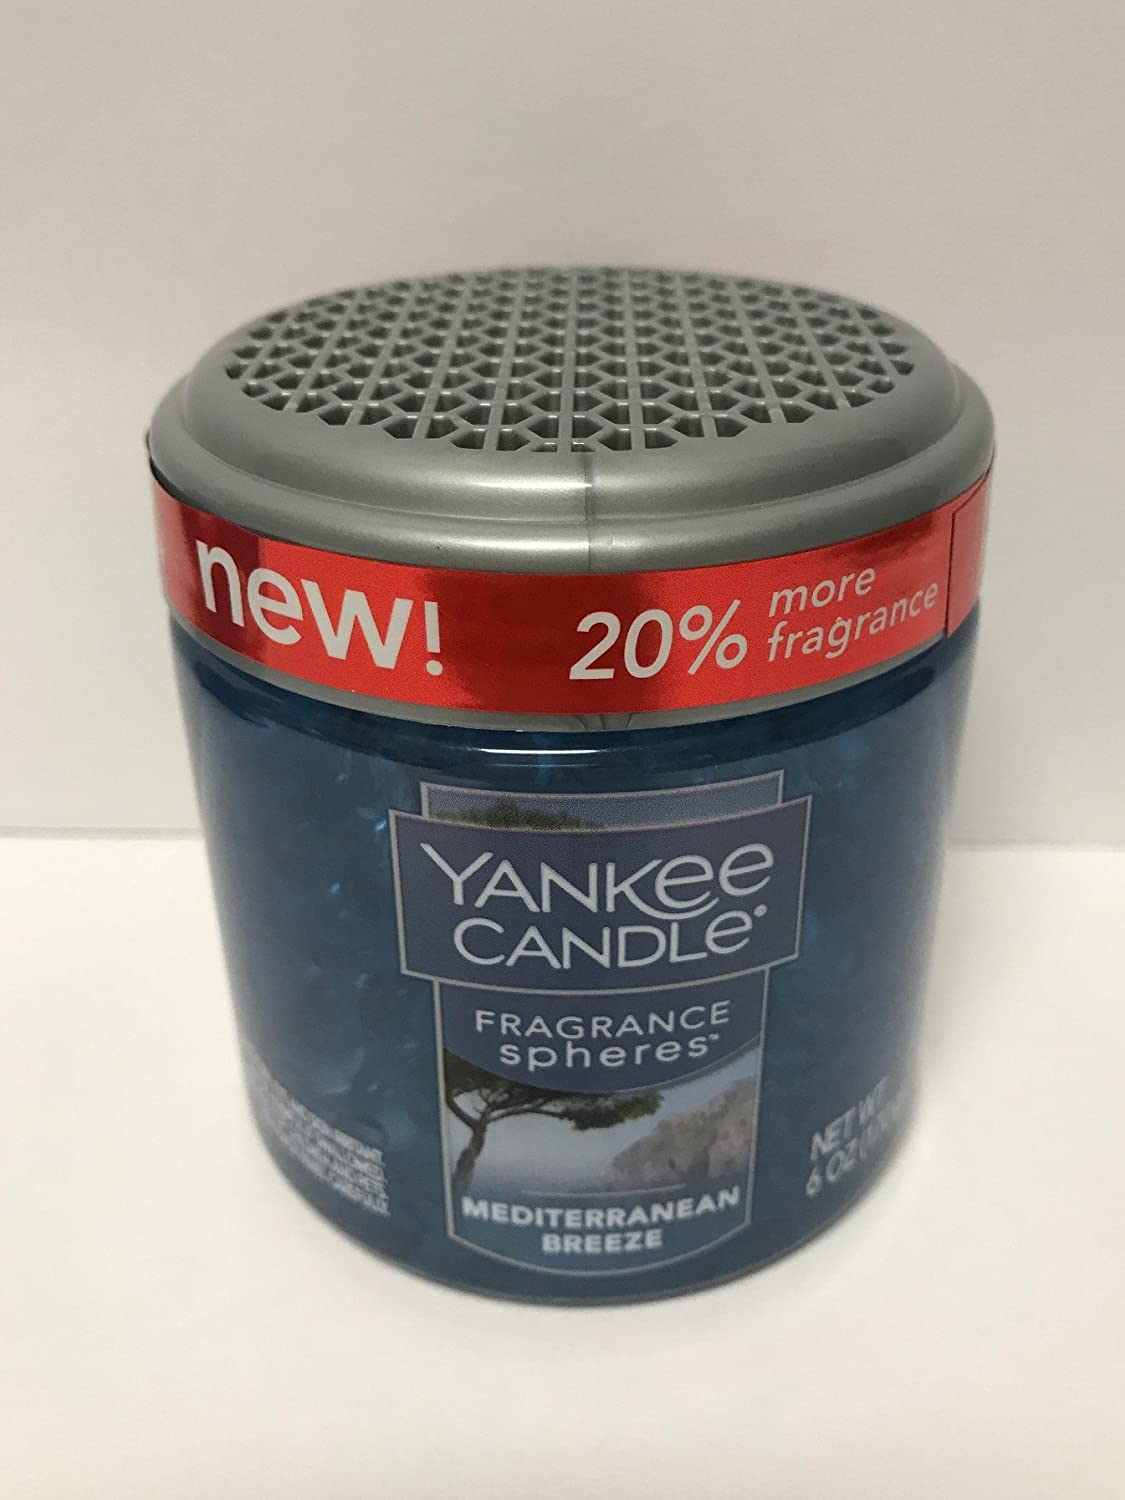 Yankee Candle Mediterranean Breeze Fragrance Spheres Odor Neutralizing Beads, Fresh Scent,Blue